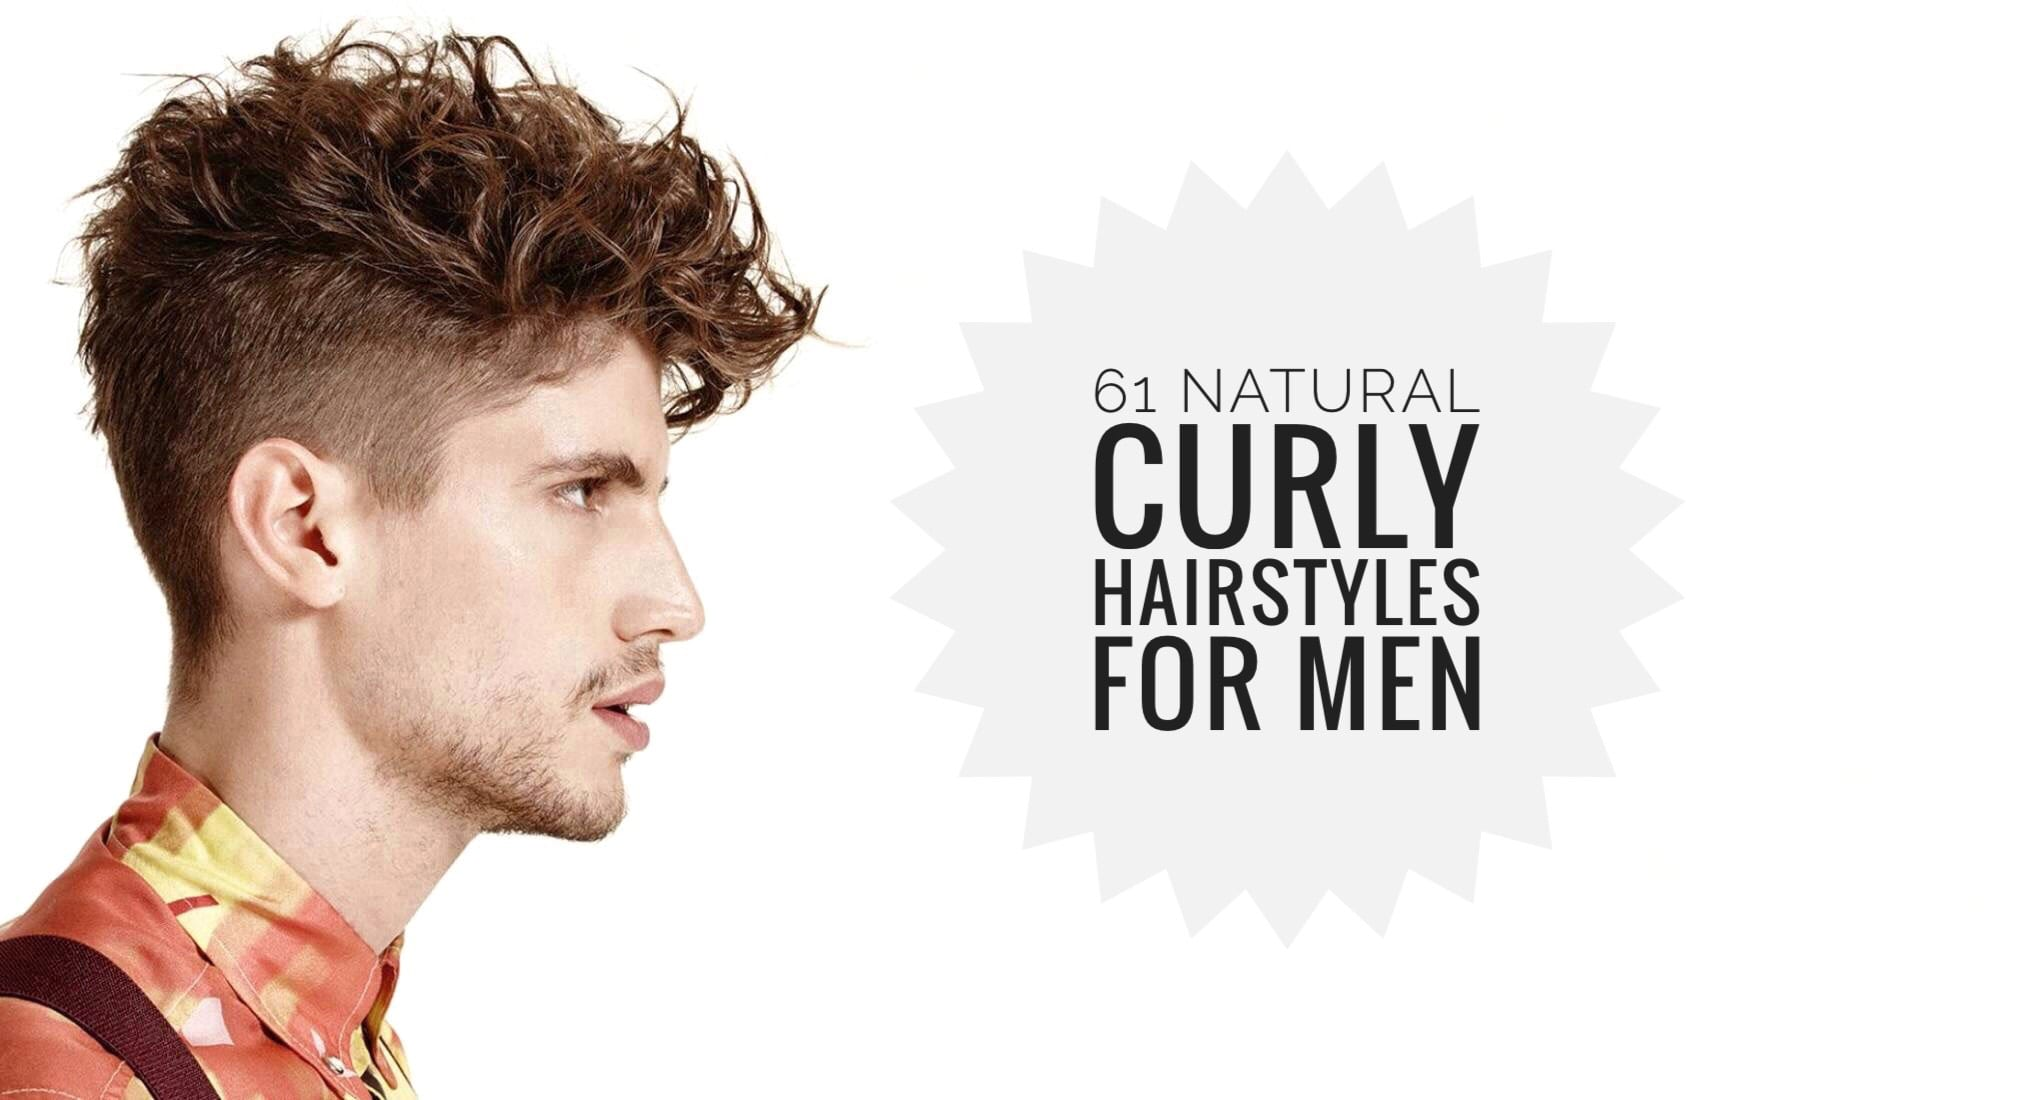 60 Curly Hairstyles For Men To Style Those Curls Men Hairstyles World